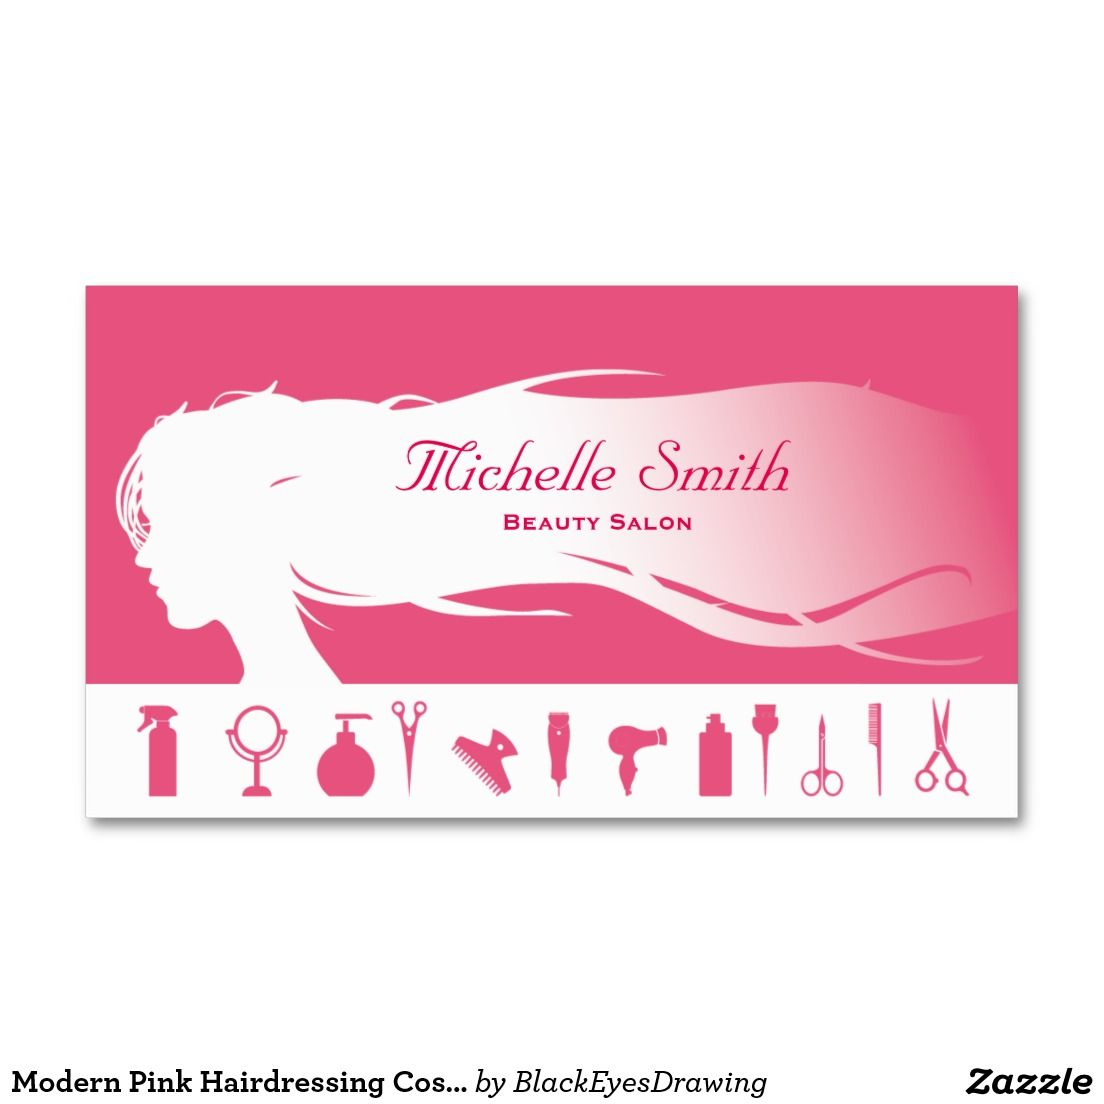 Modern Pink Hairdressing Cosmetics Beauty Salon Business Card ...